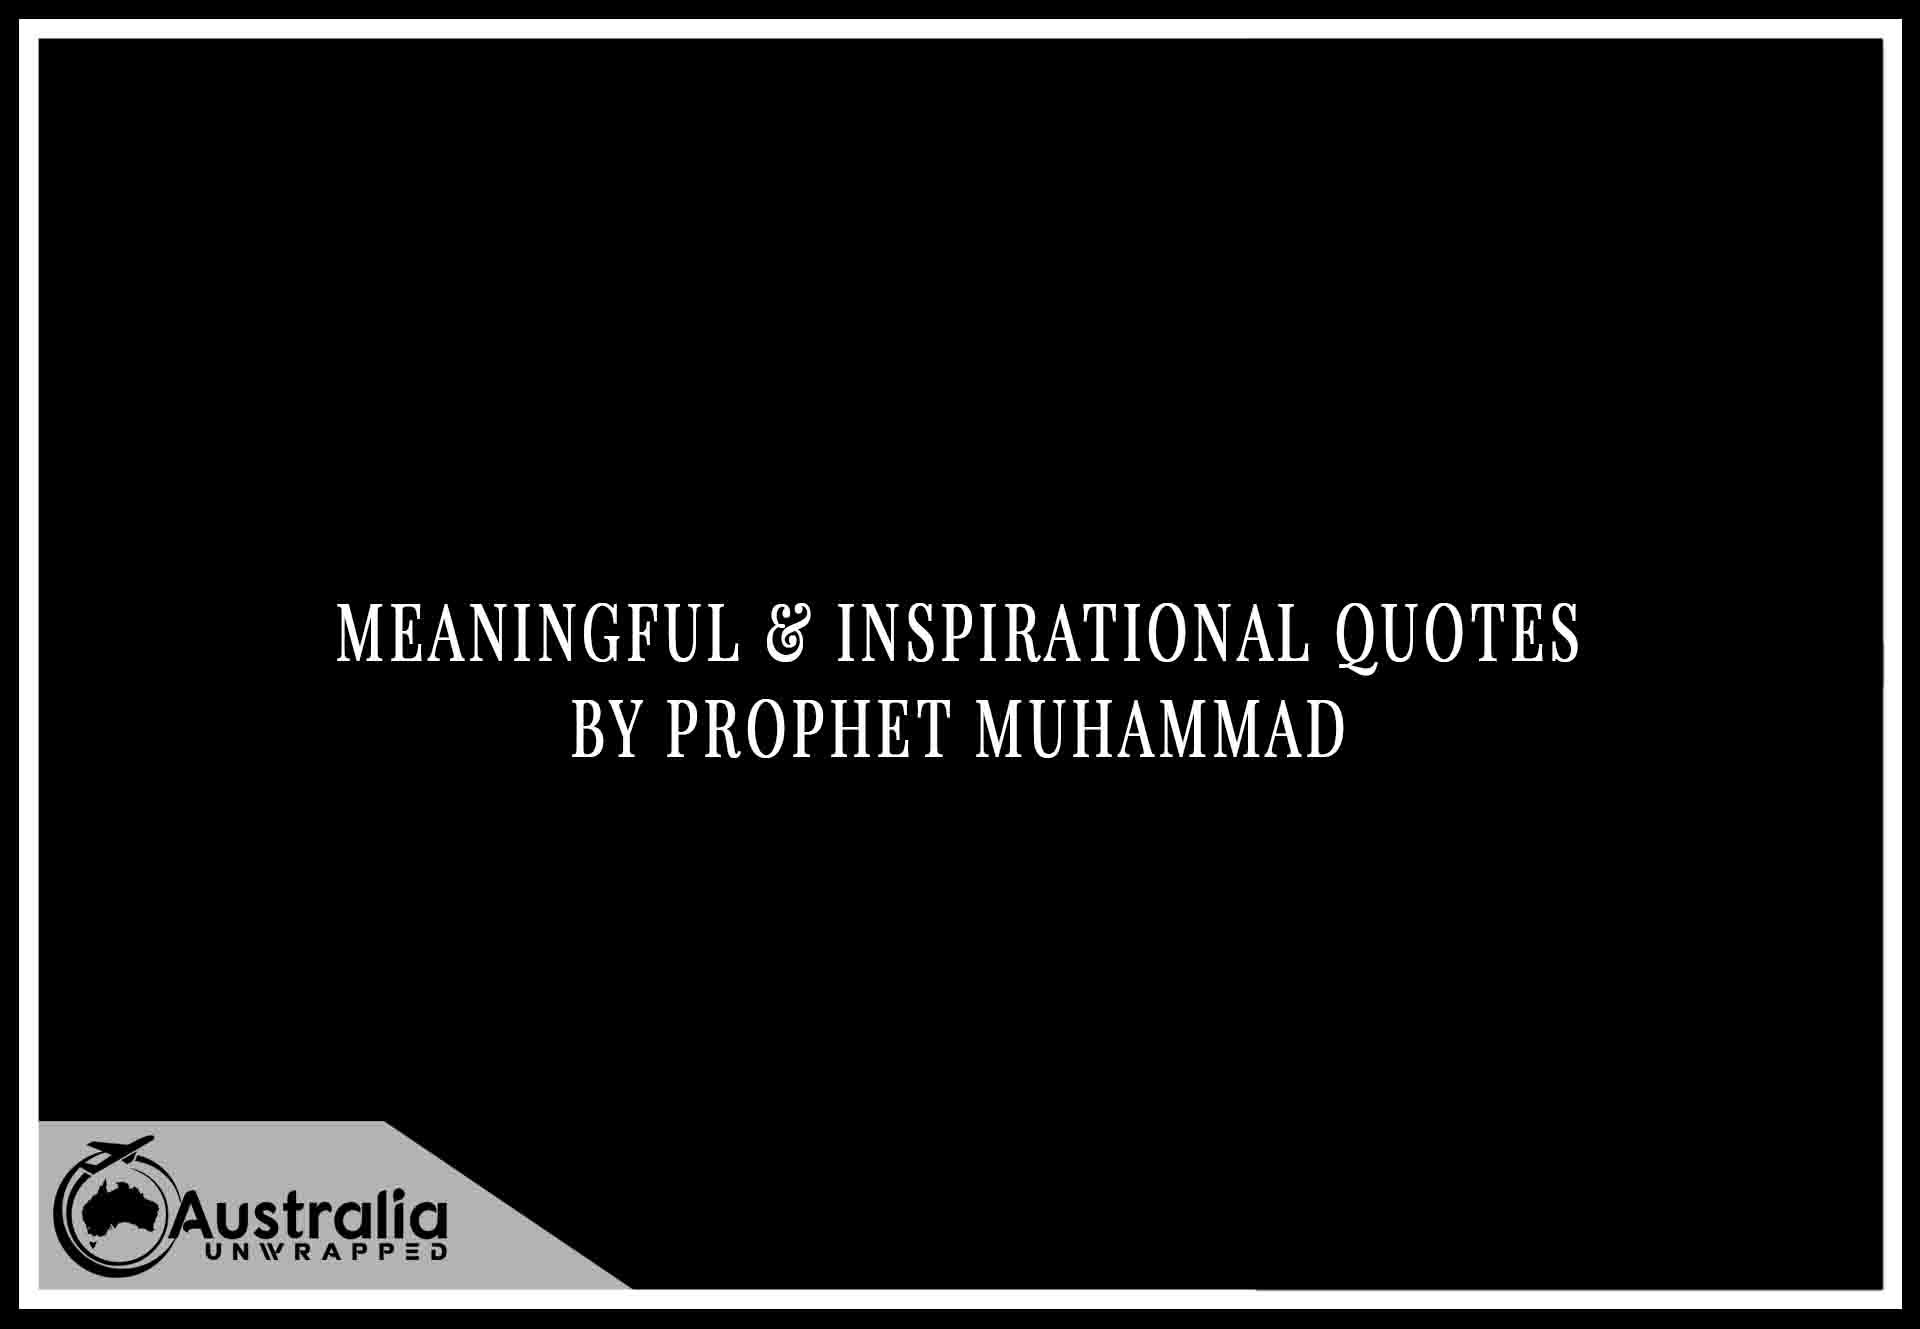 Meaningful & Inspirational Quotes by Prophet Muhammad